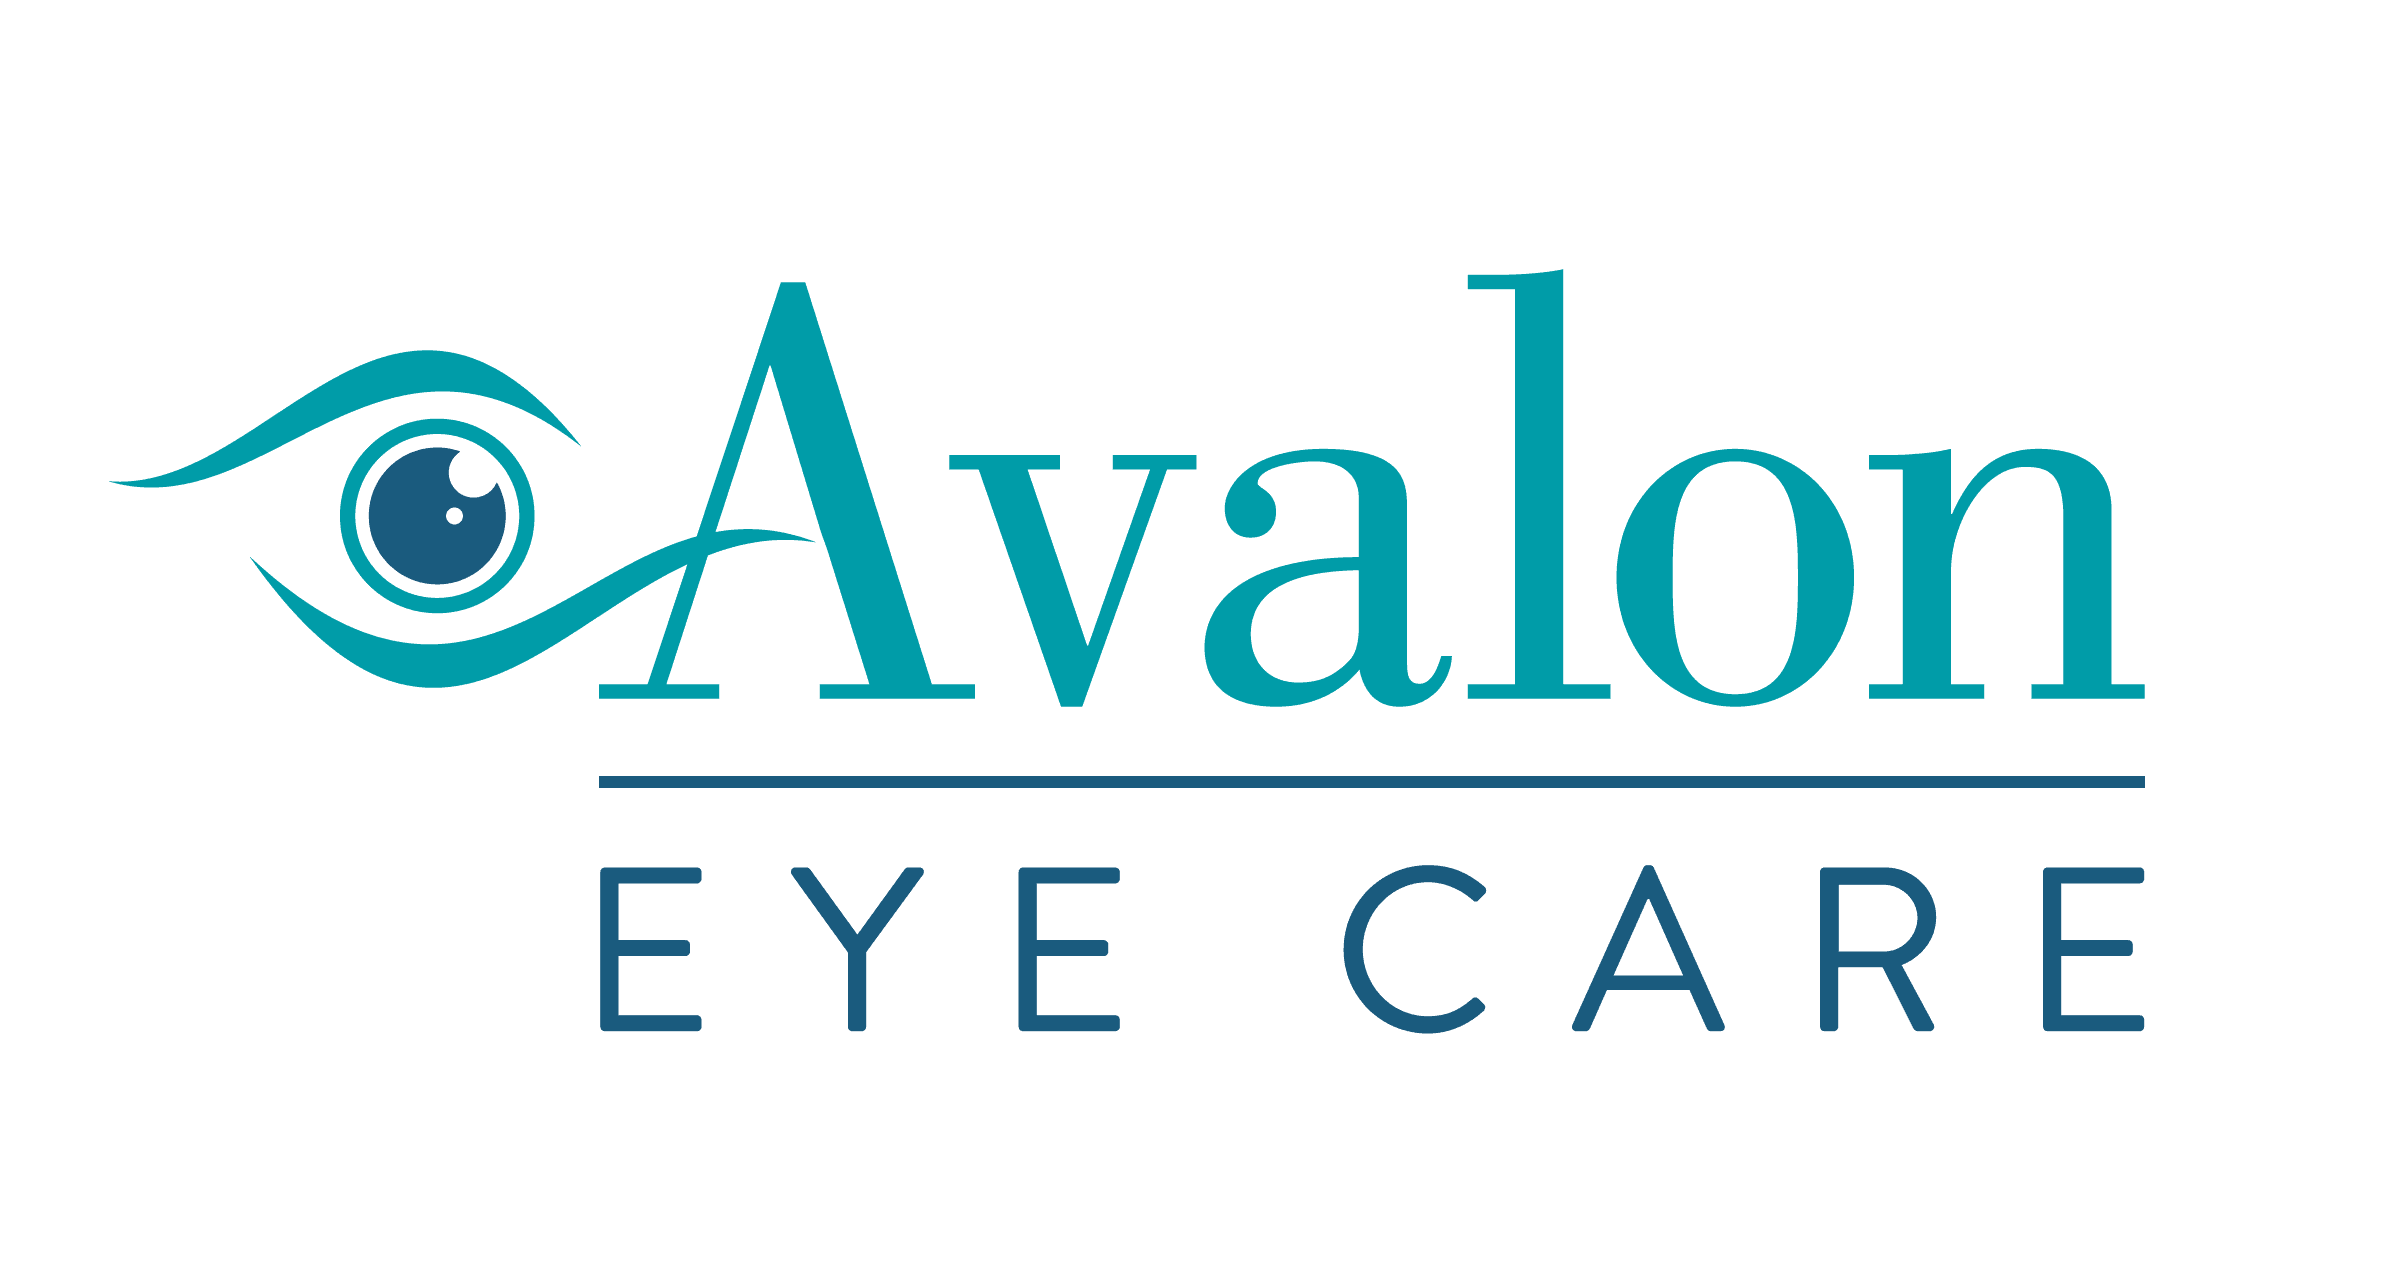 Avalon Eye Care